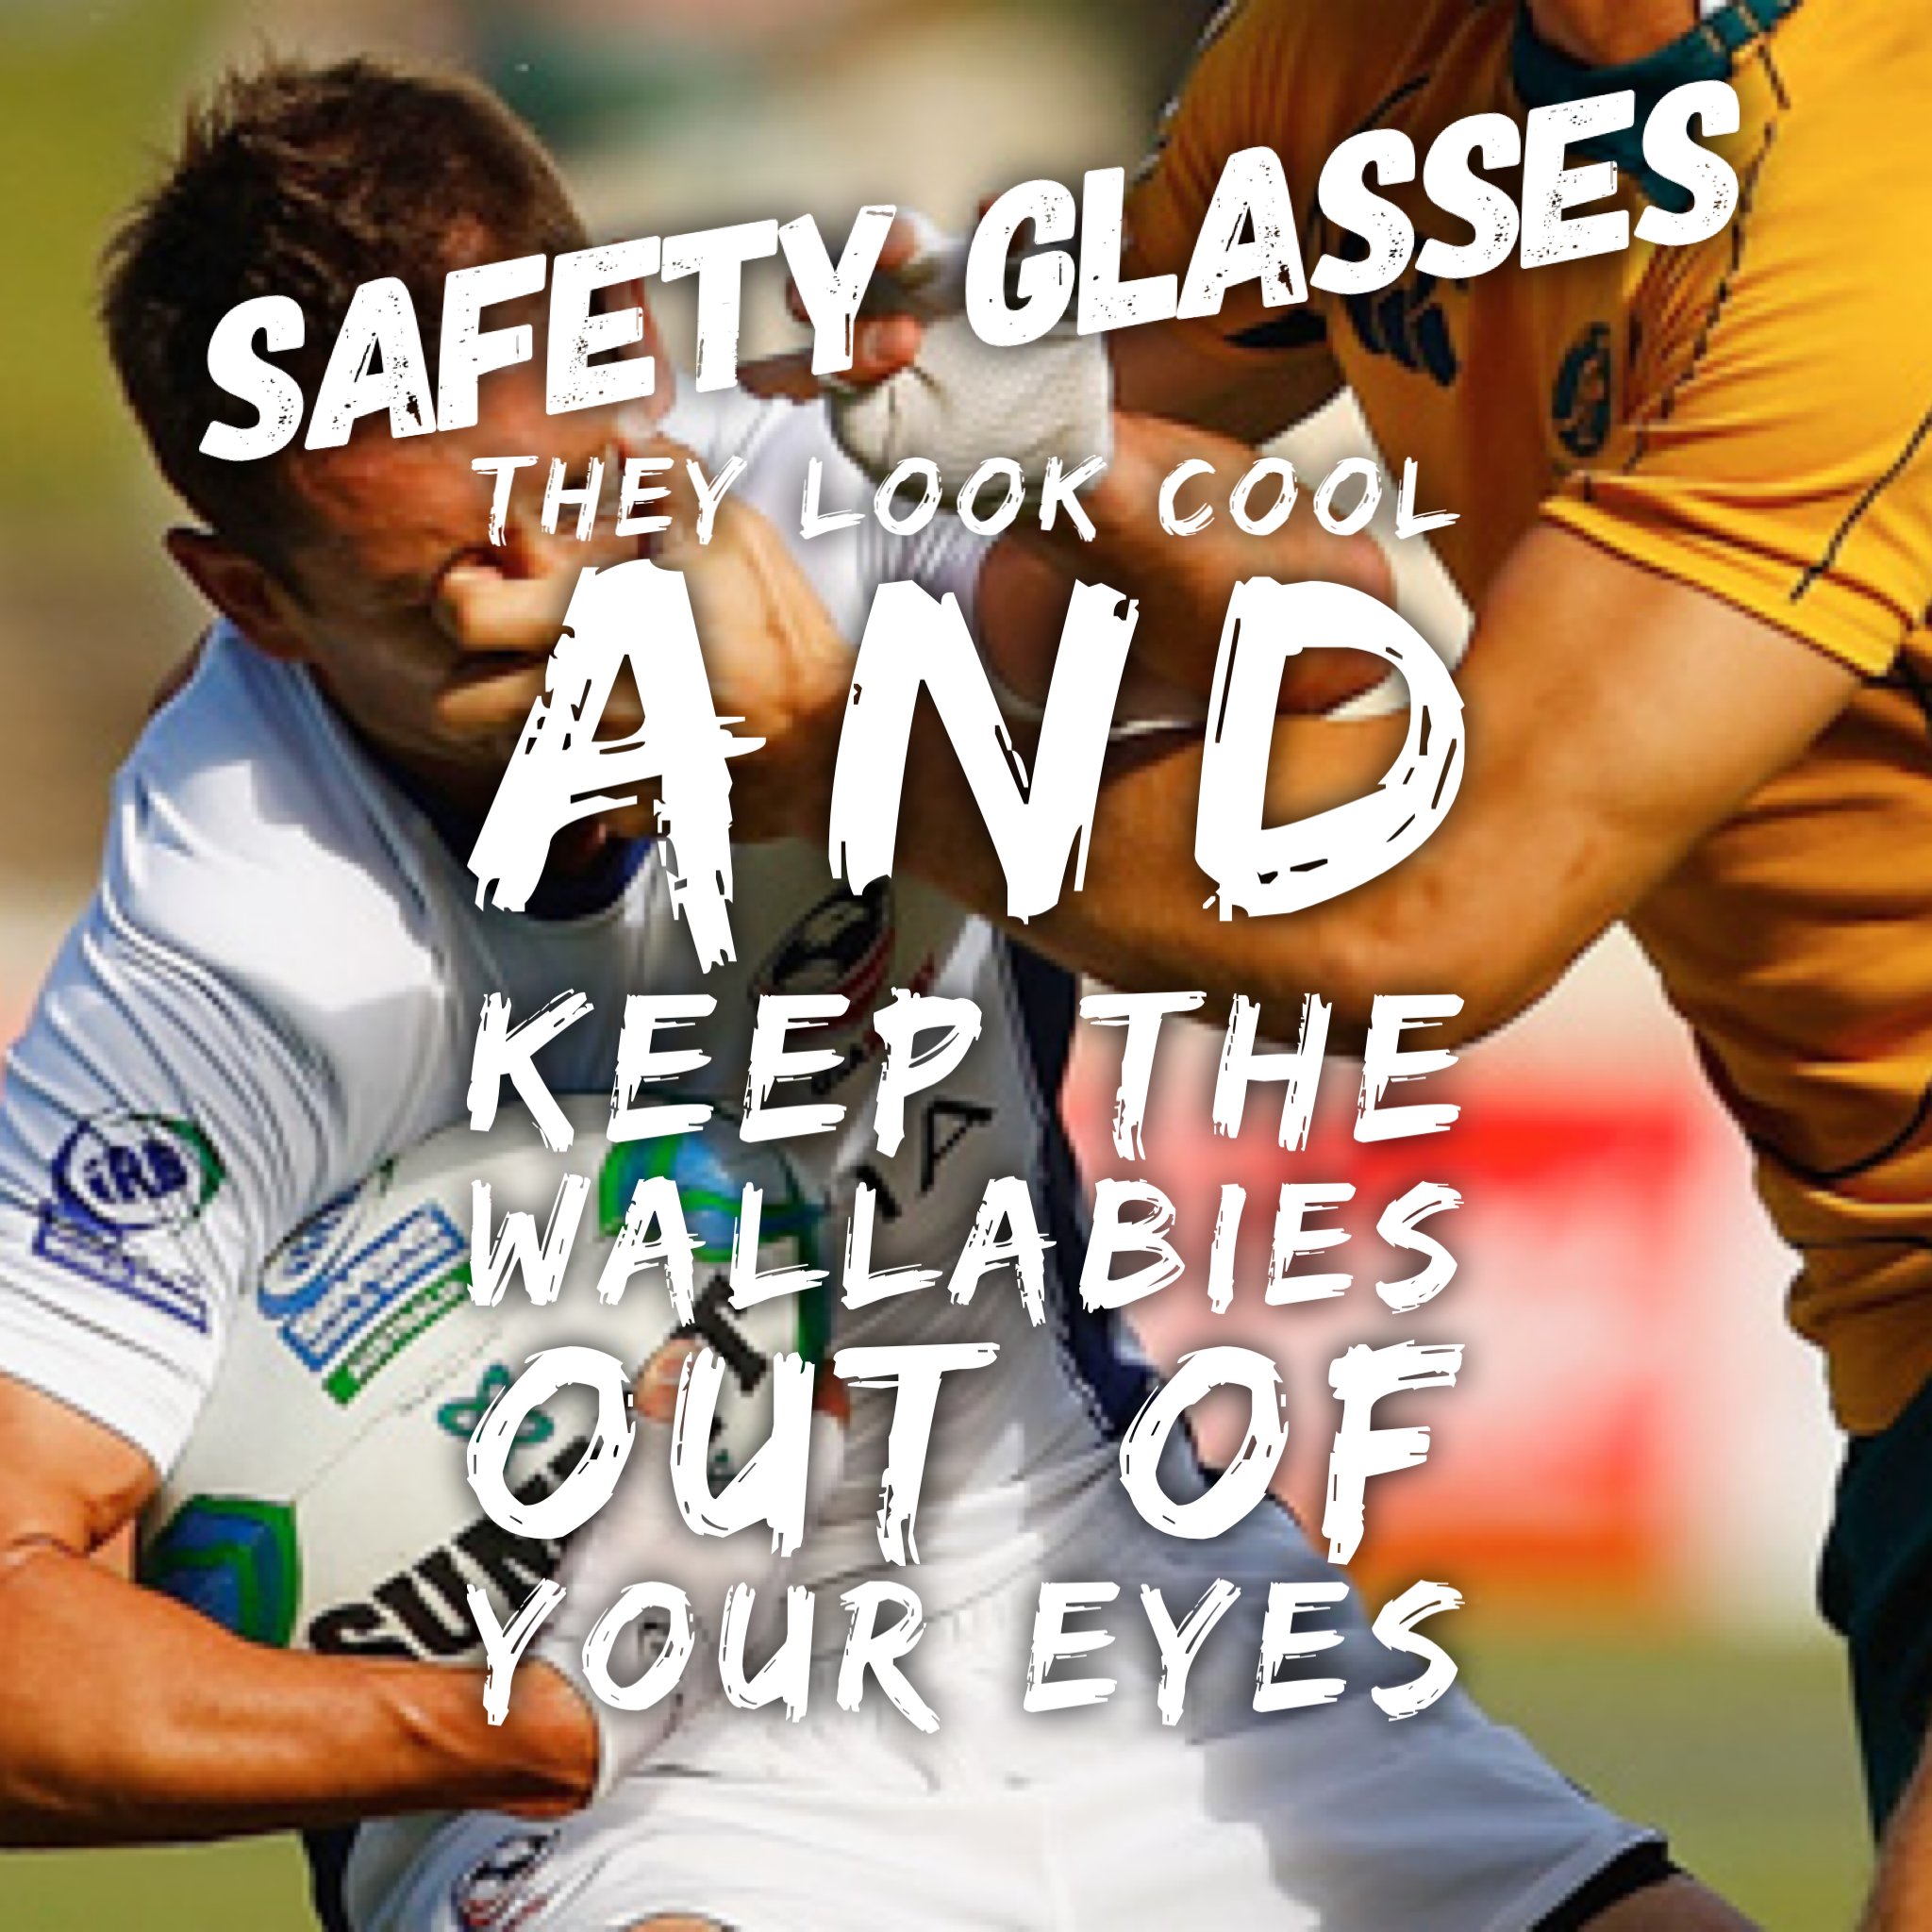 Pin by Grant Kretschmer on Safety Posts Cool glasses